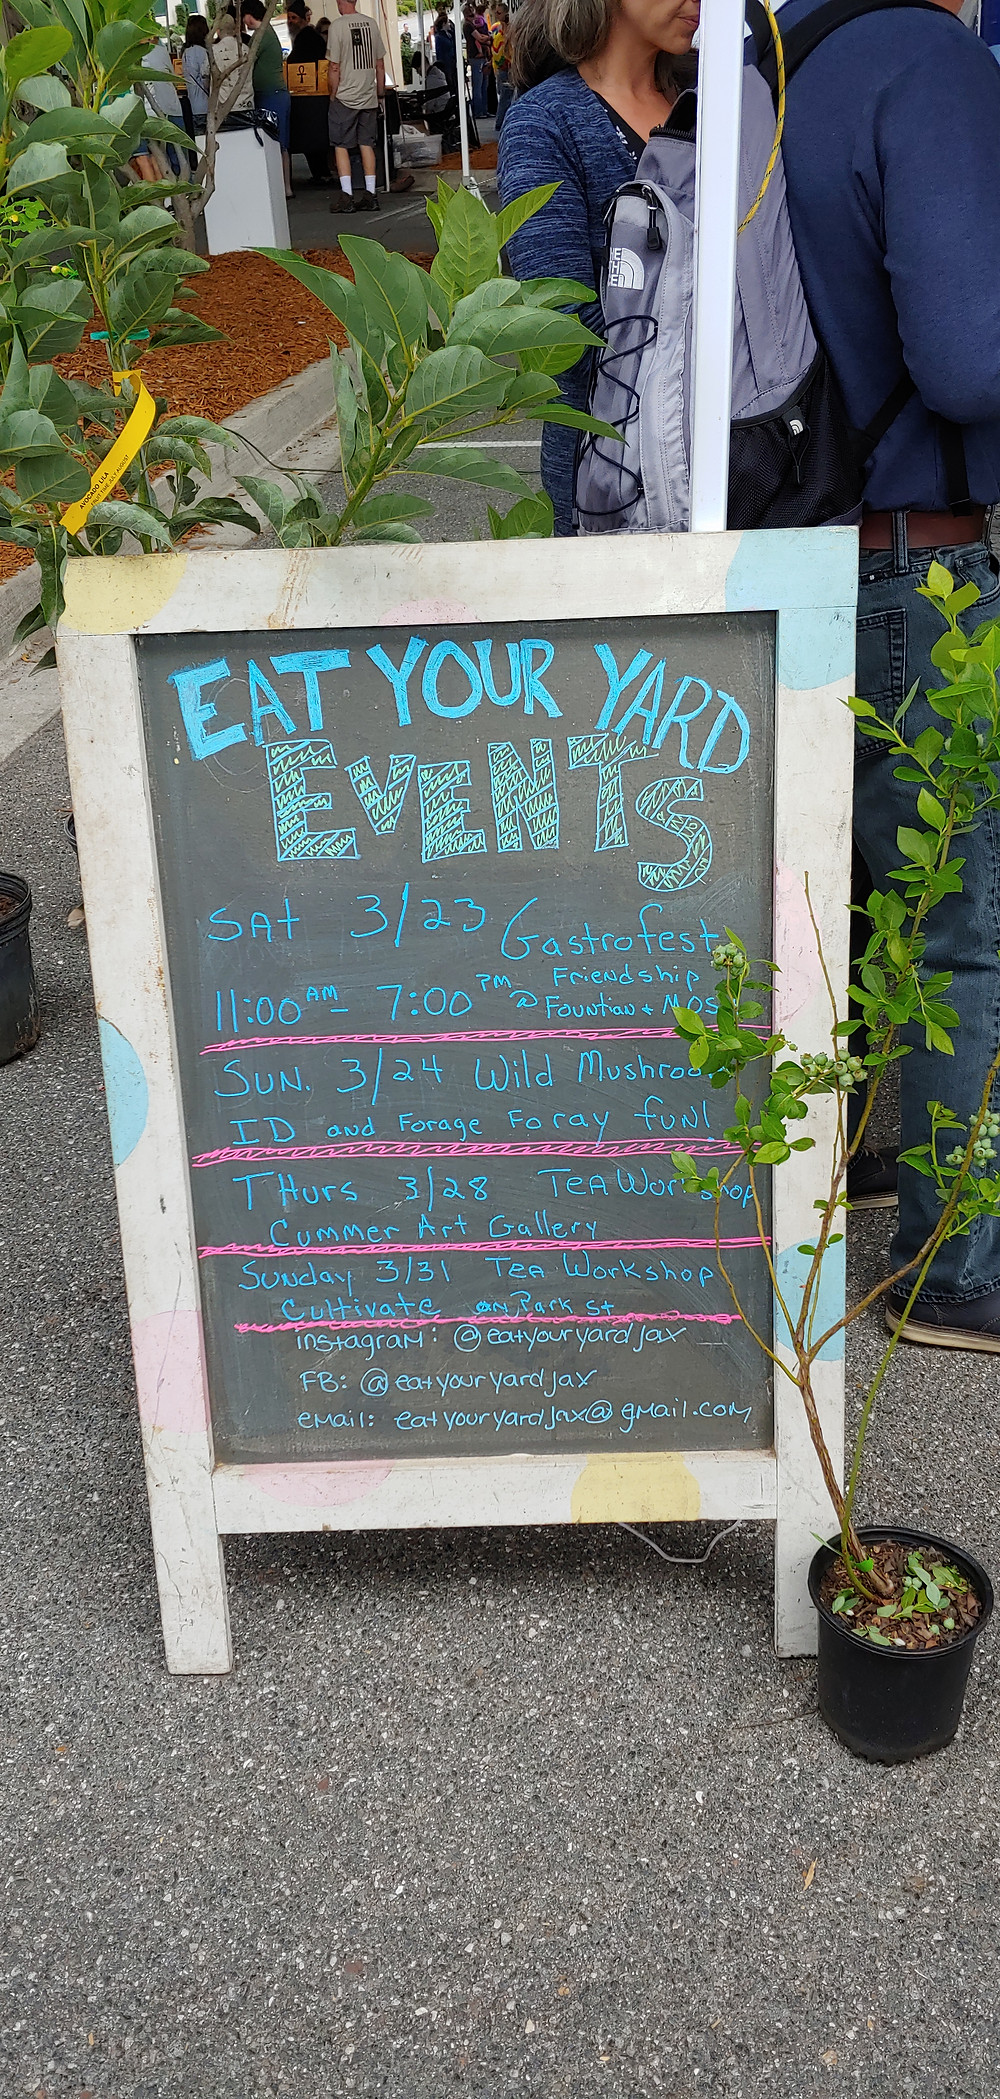 """A sign that says """"eat your yard events"""" at the Riverside Arts Market."""